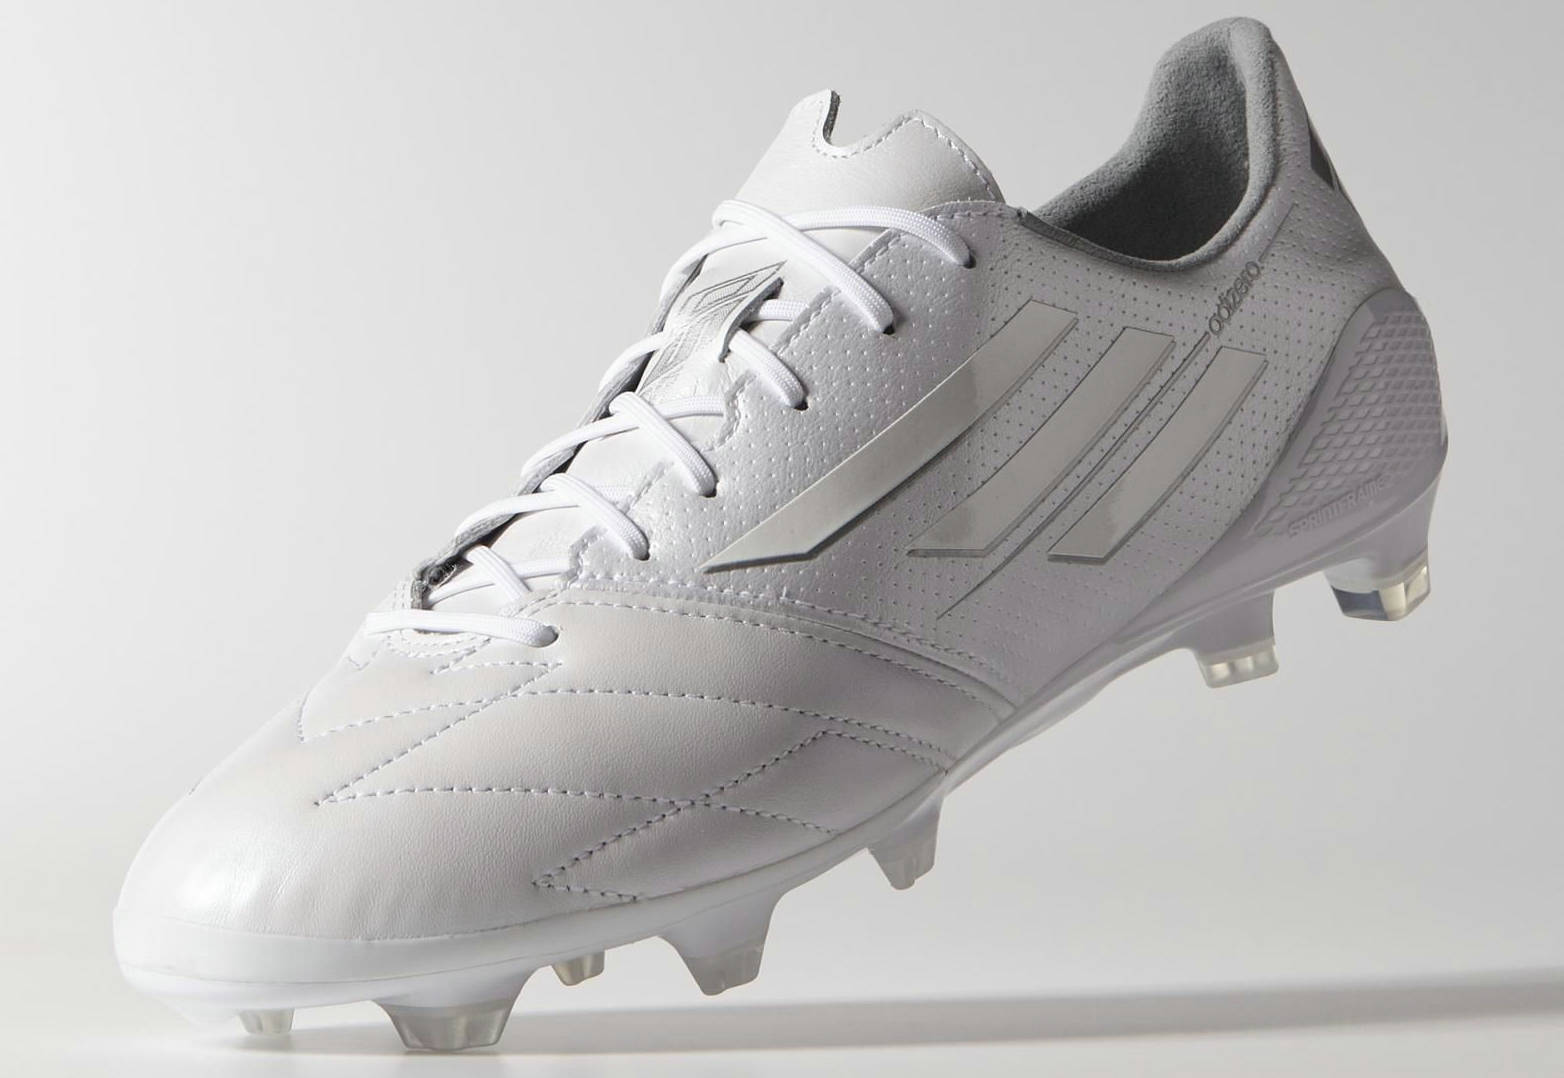 whiteout adidas adizero f50 2014 leather boot released. Black Bedroom Furniture Sets. Home Design Ideas